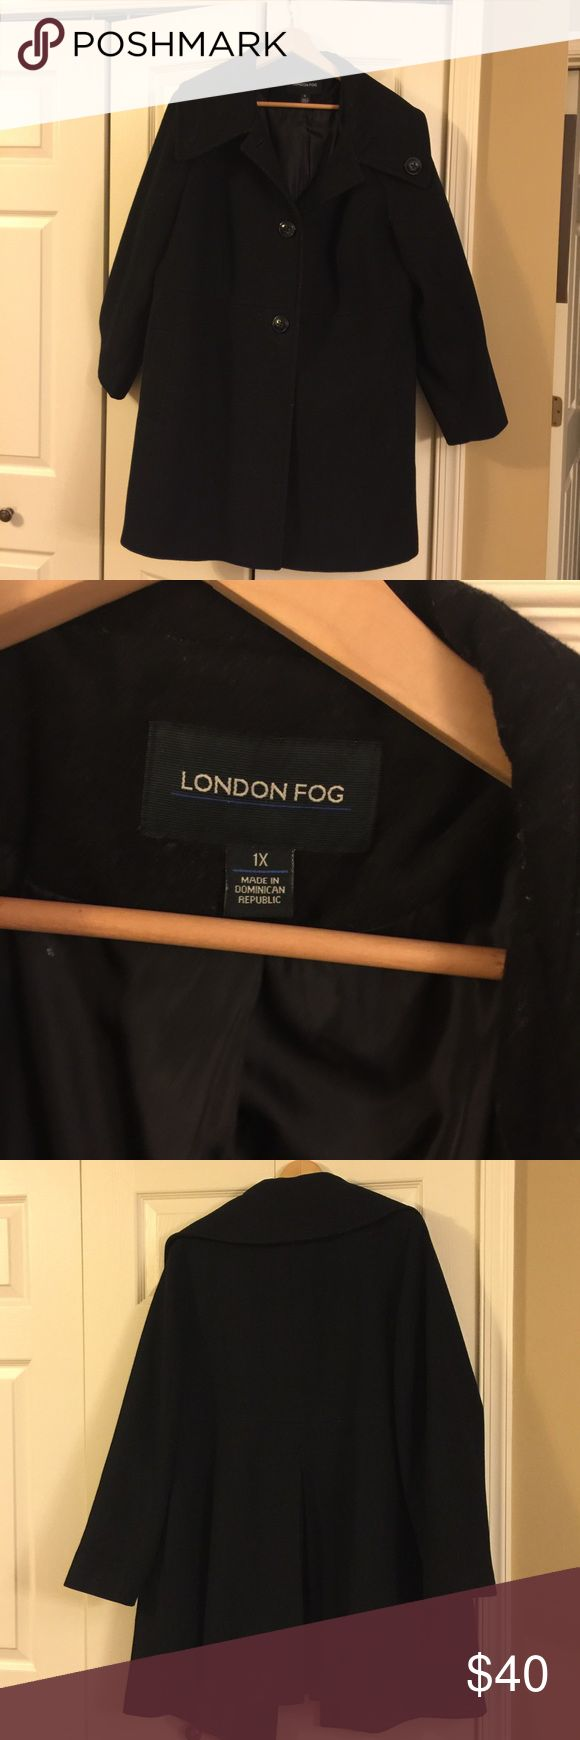 London Fog Ladies Winter Coat Very nice woman's wool coat; black; vent in back; 2 buttons in front; collar can also be buttoned closed. London Fog London Fog Jackets & Coats Pea Coats